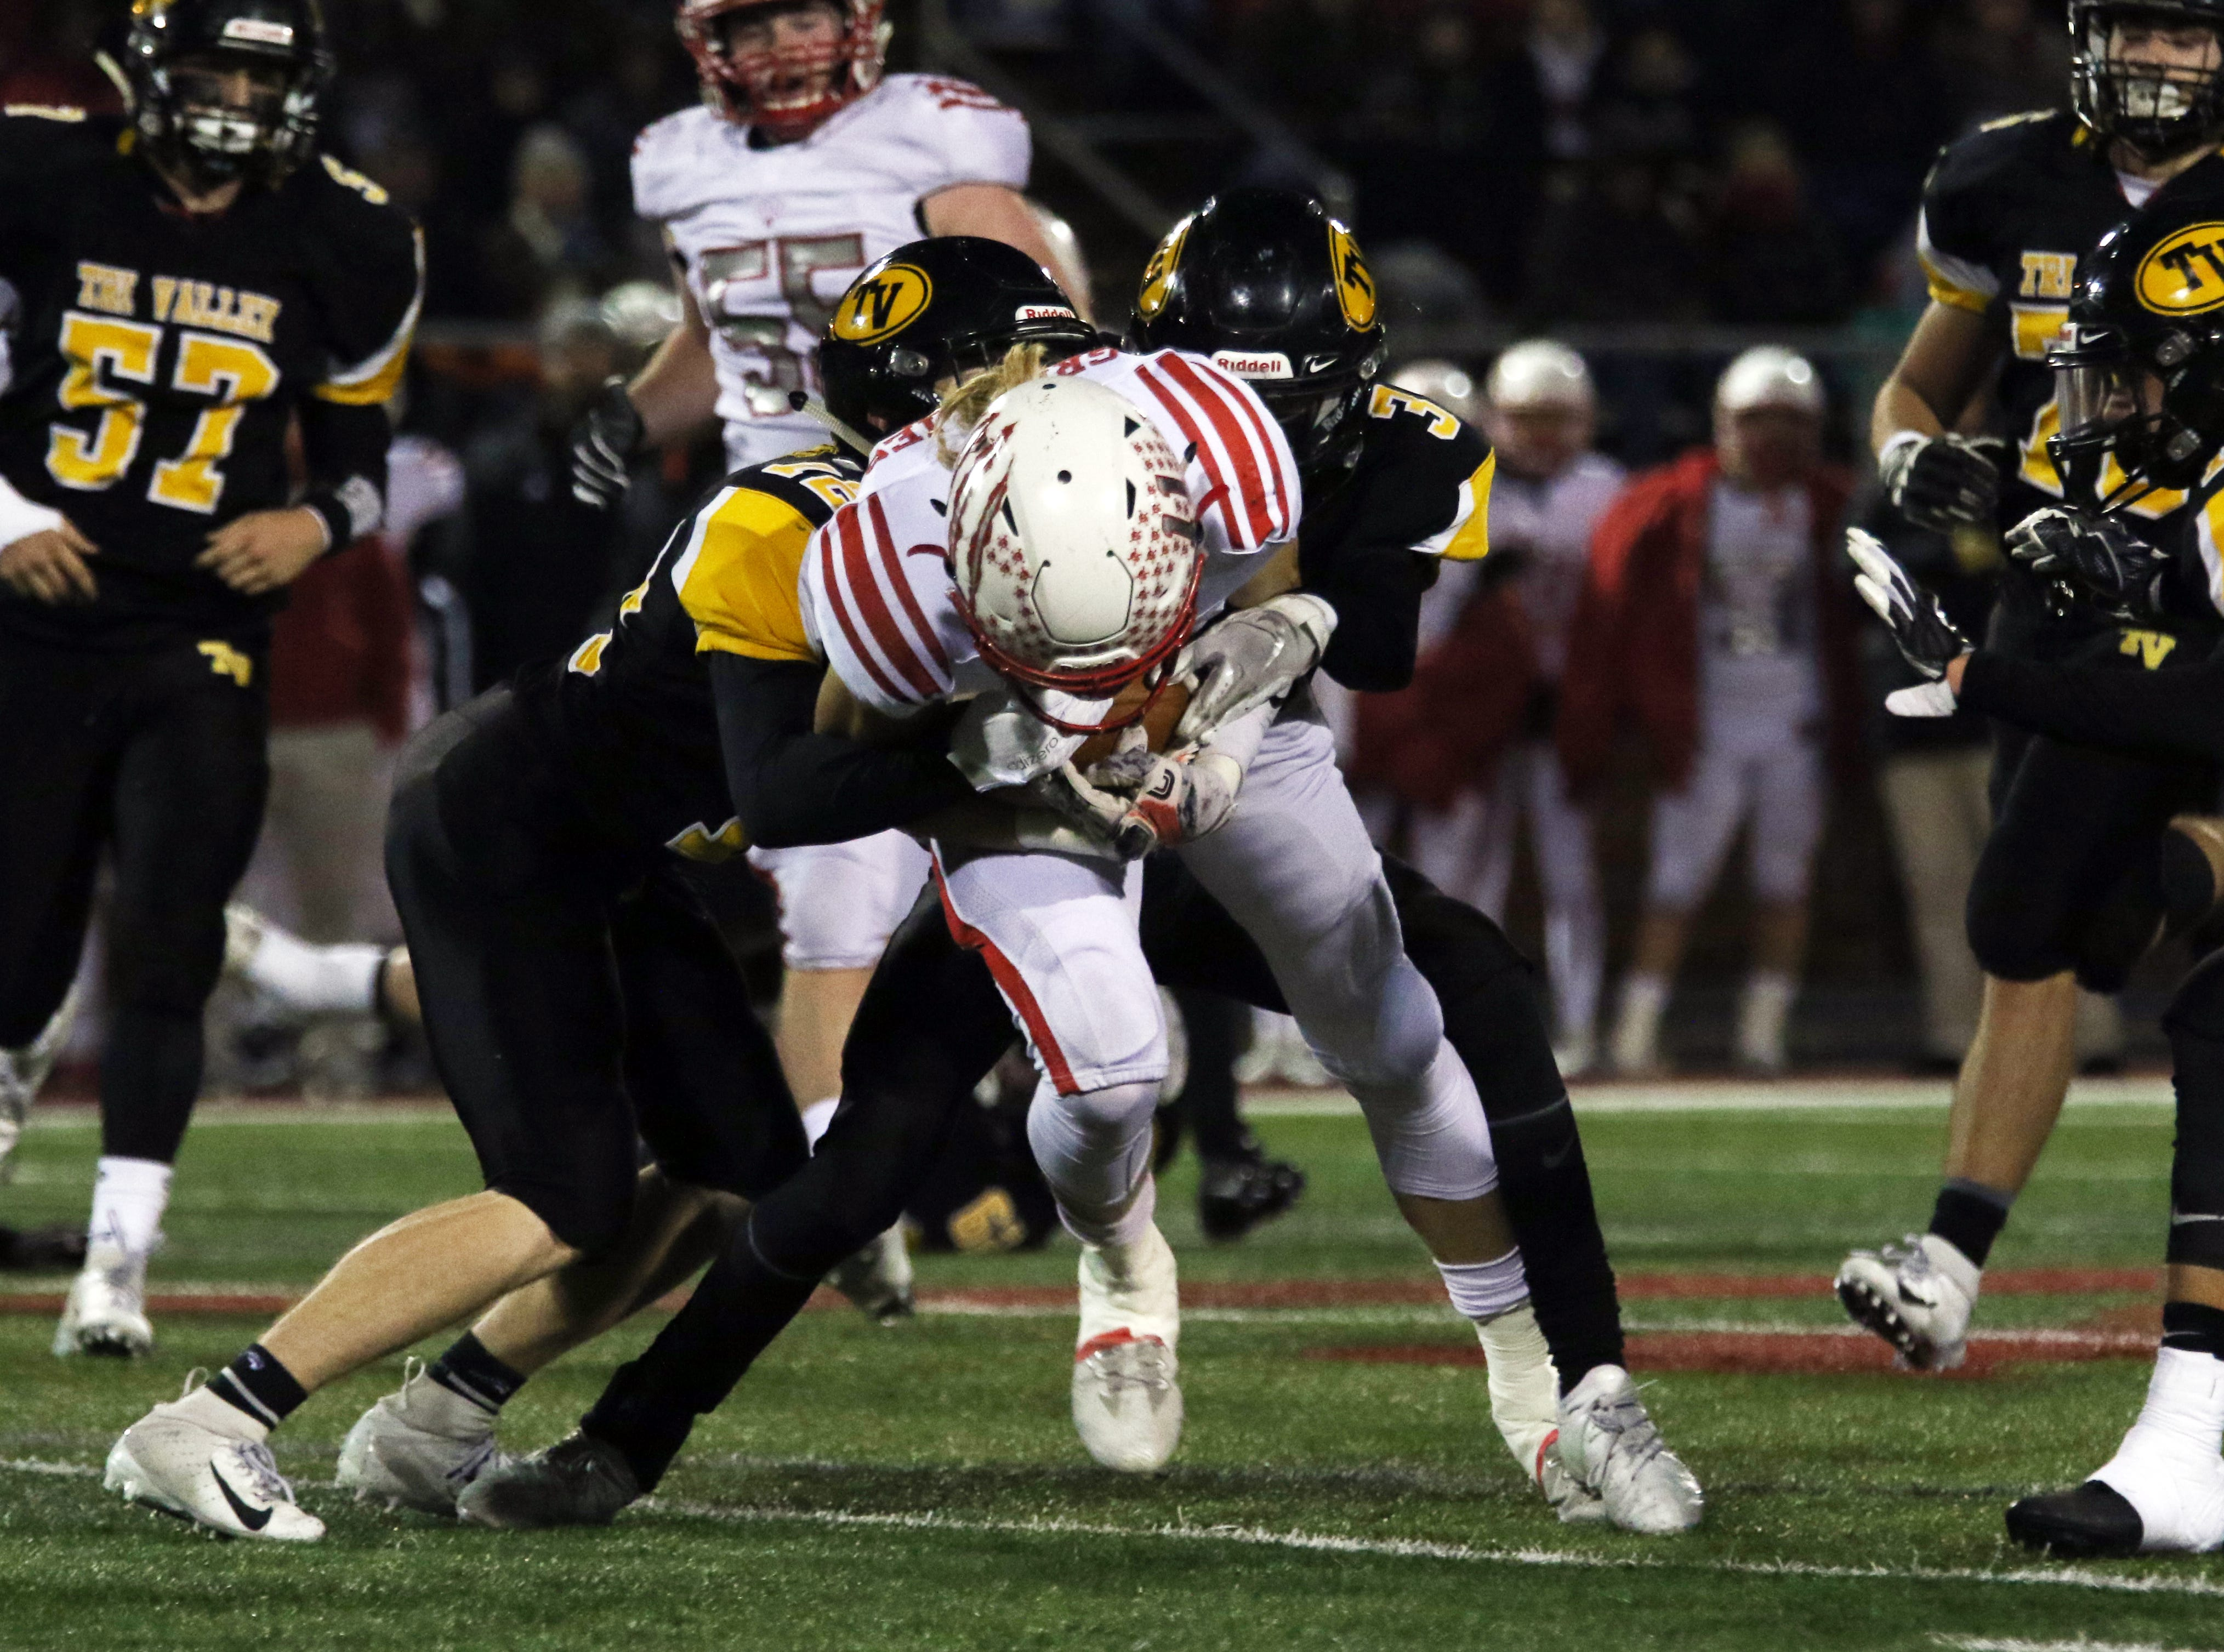 Tri-Valley defenders bring down a Wadsworth ball carrier.